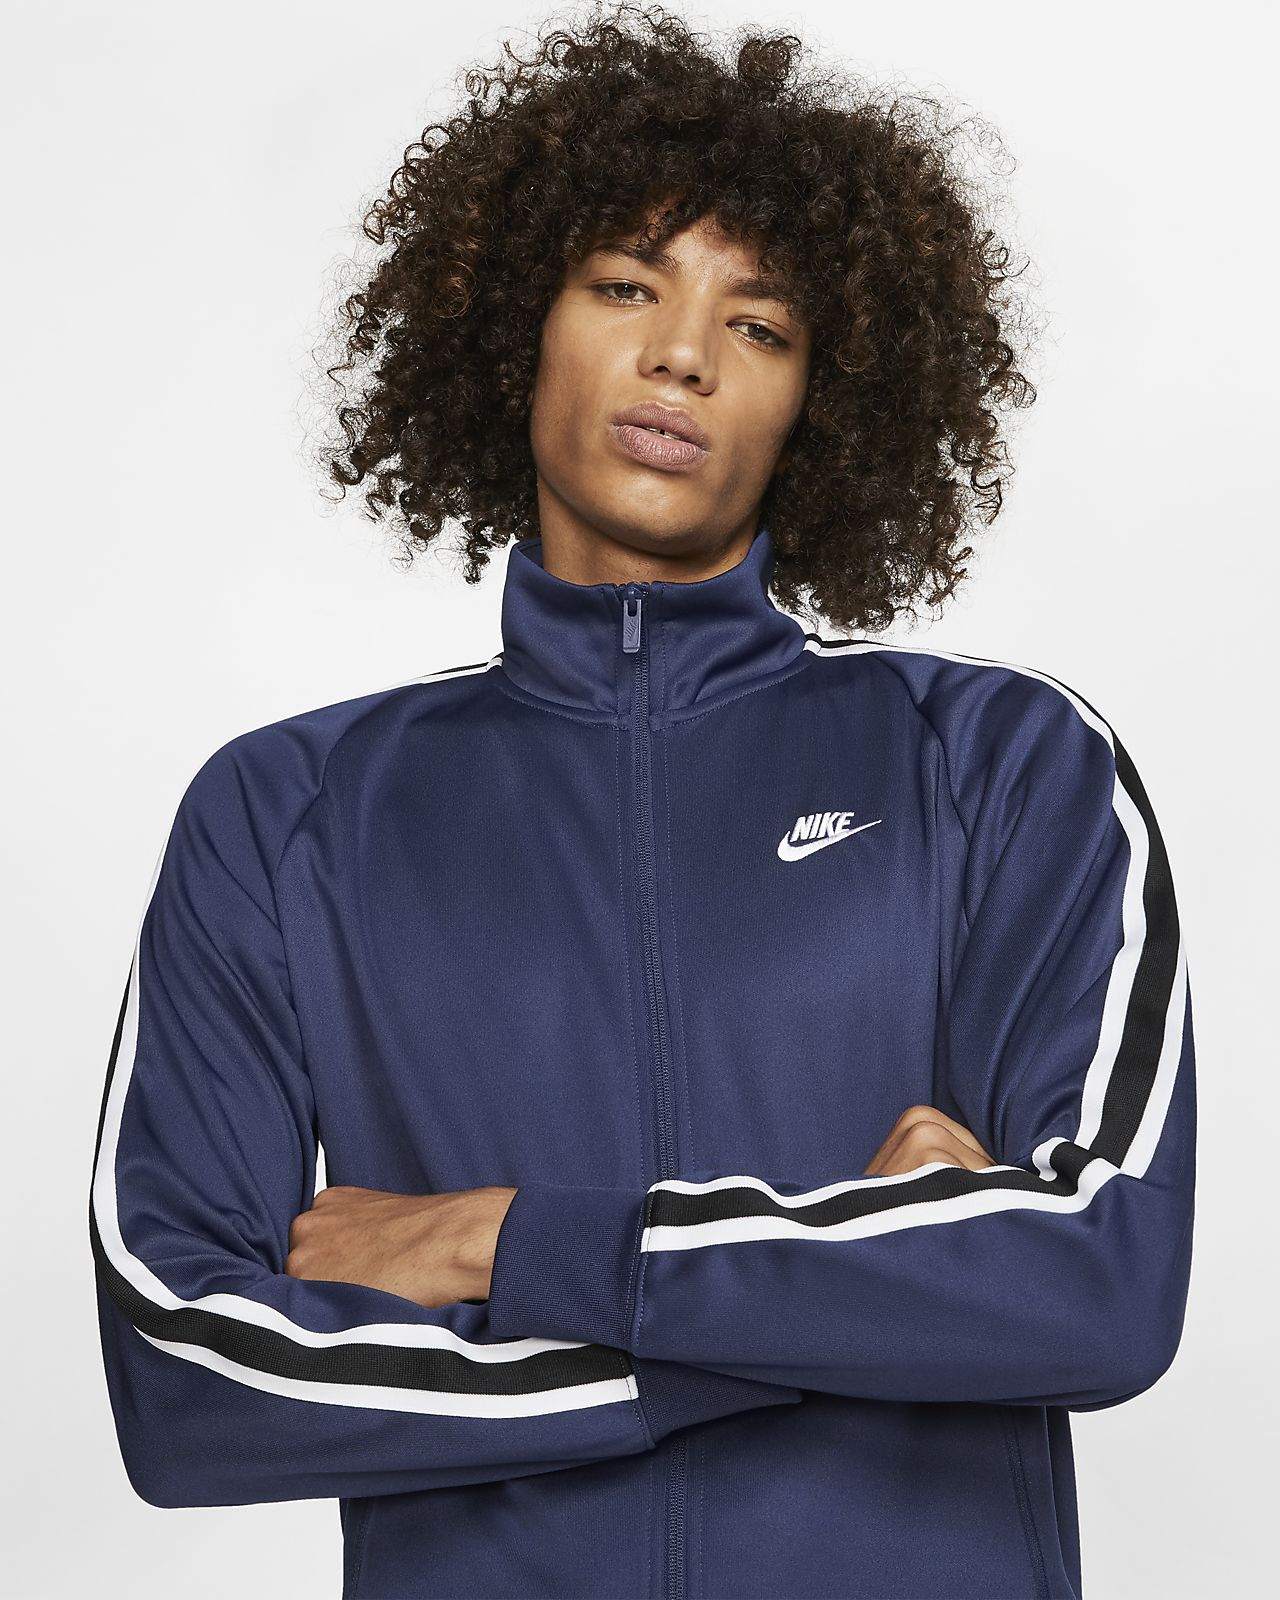 Veste de survetement Nike F.C. N98 Vetements Homme Bleu